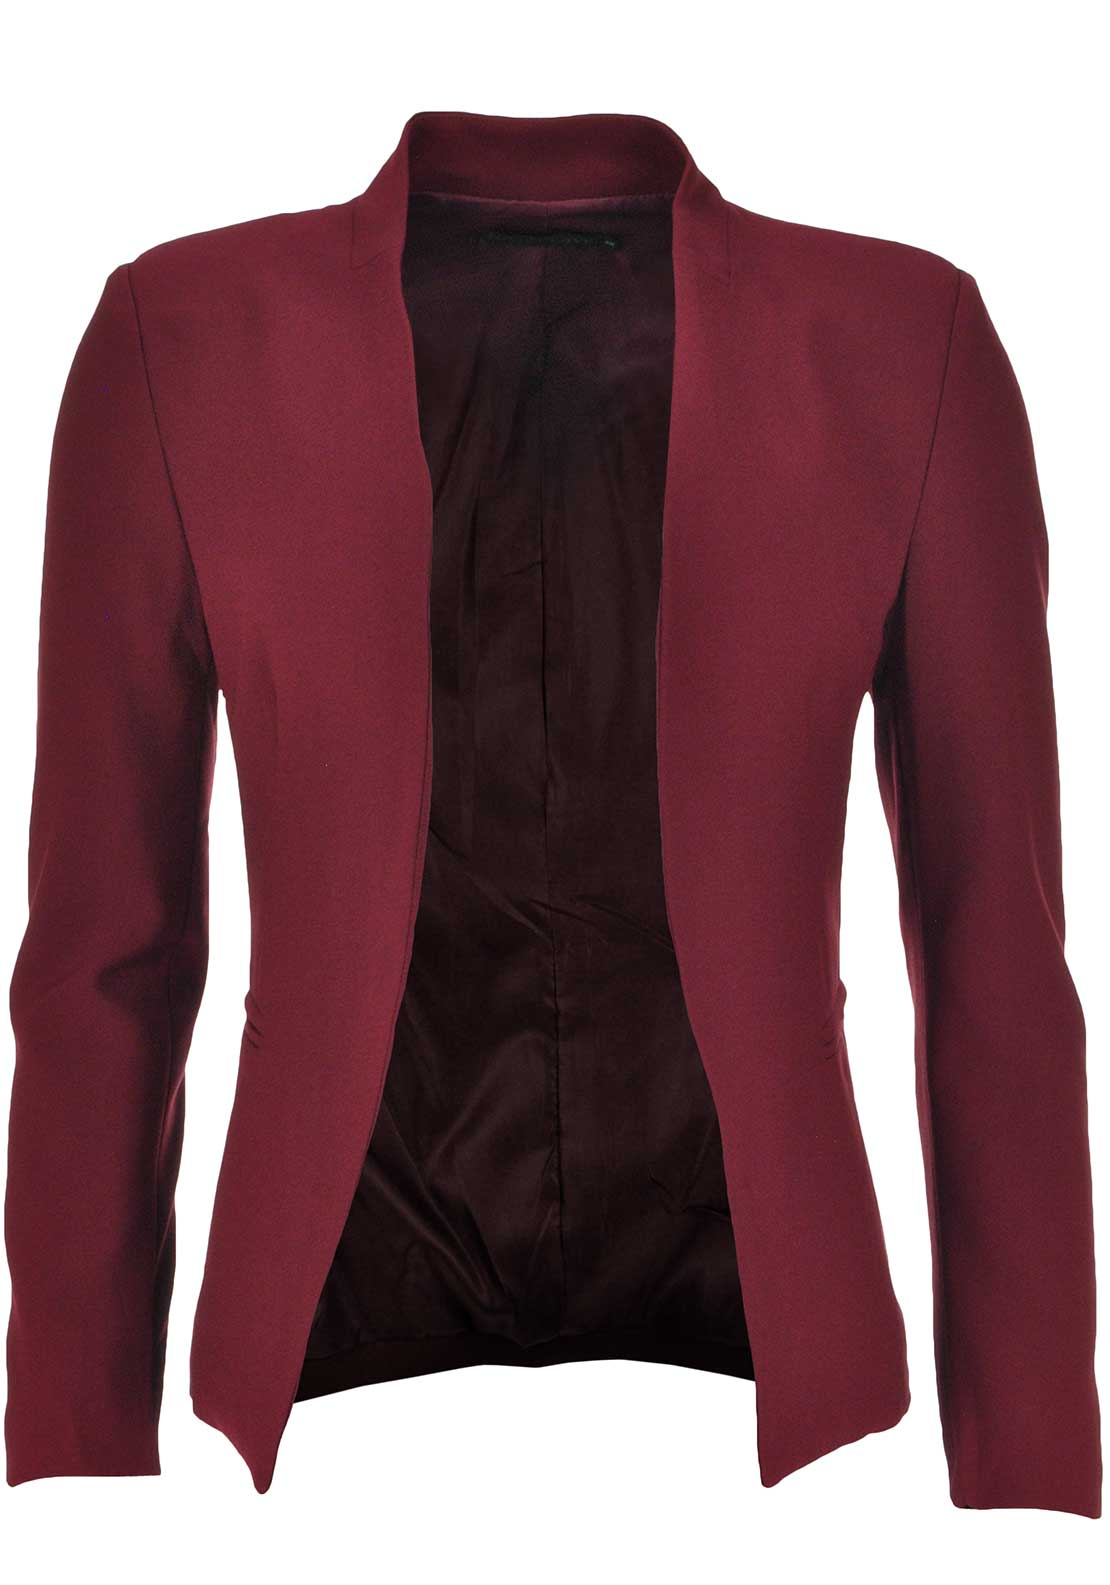 Boutique Classic Blazer Jacket, Wine